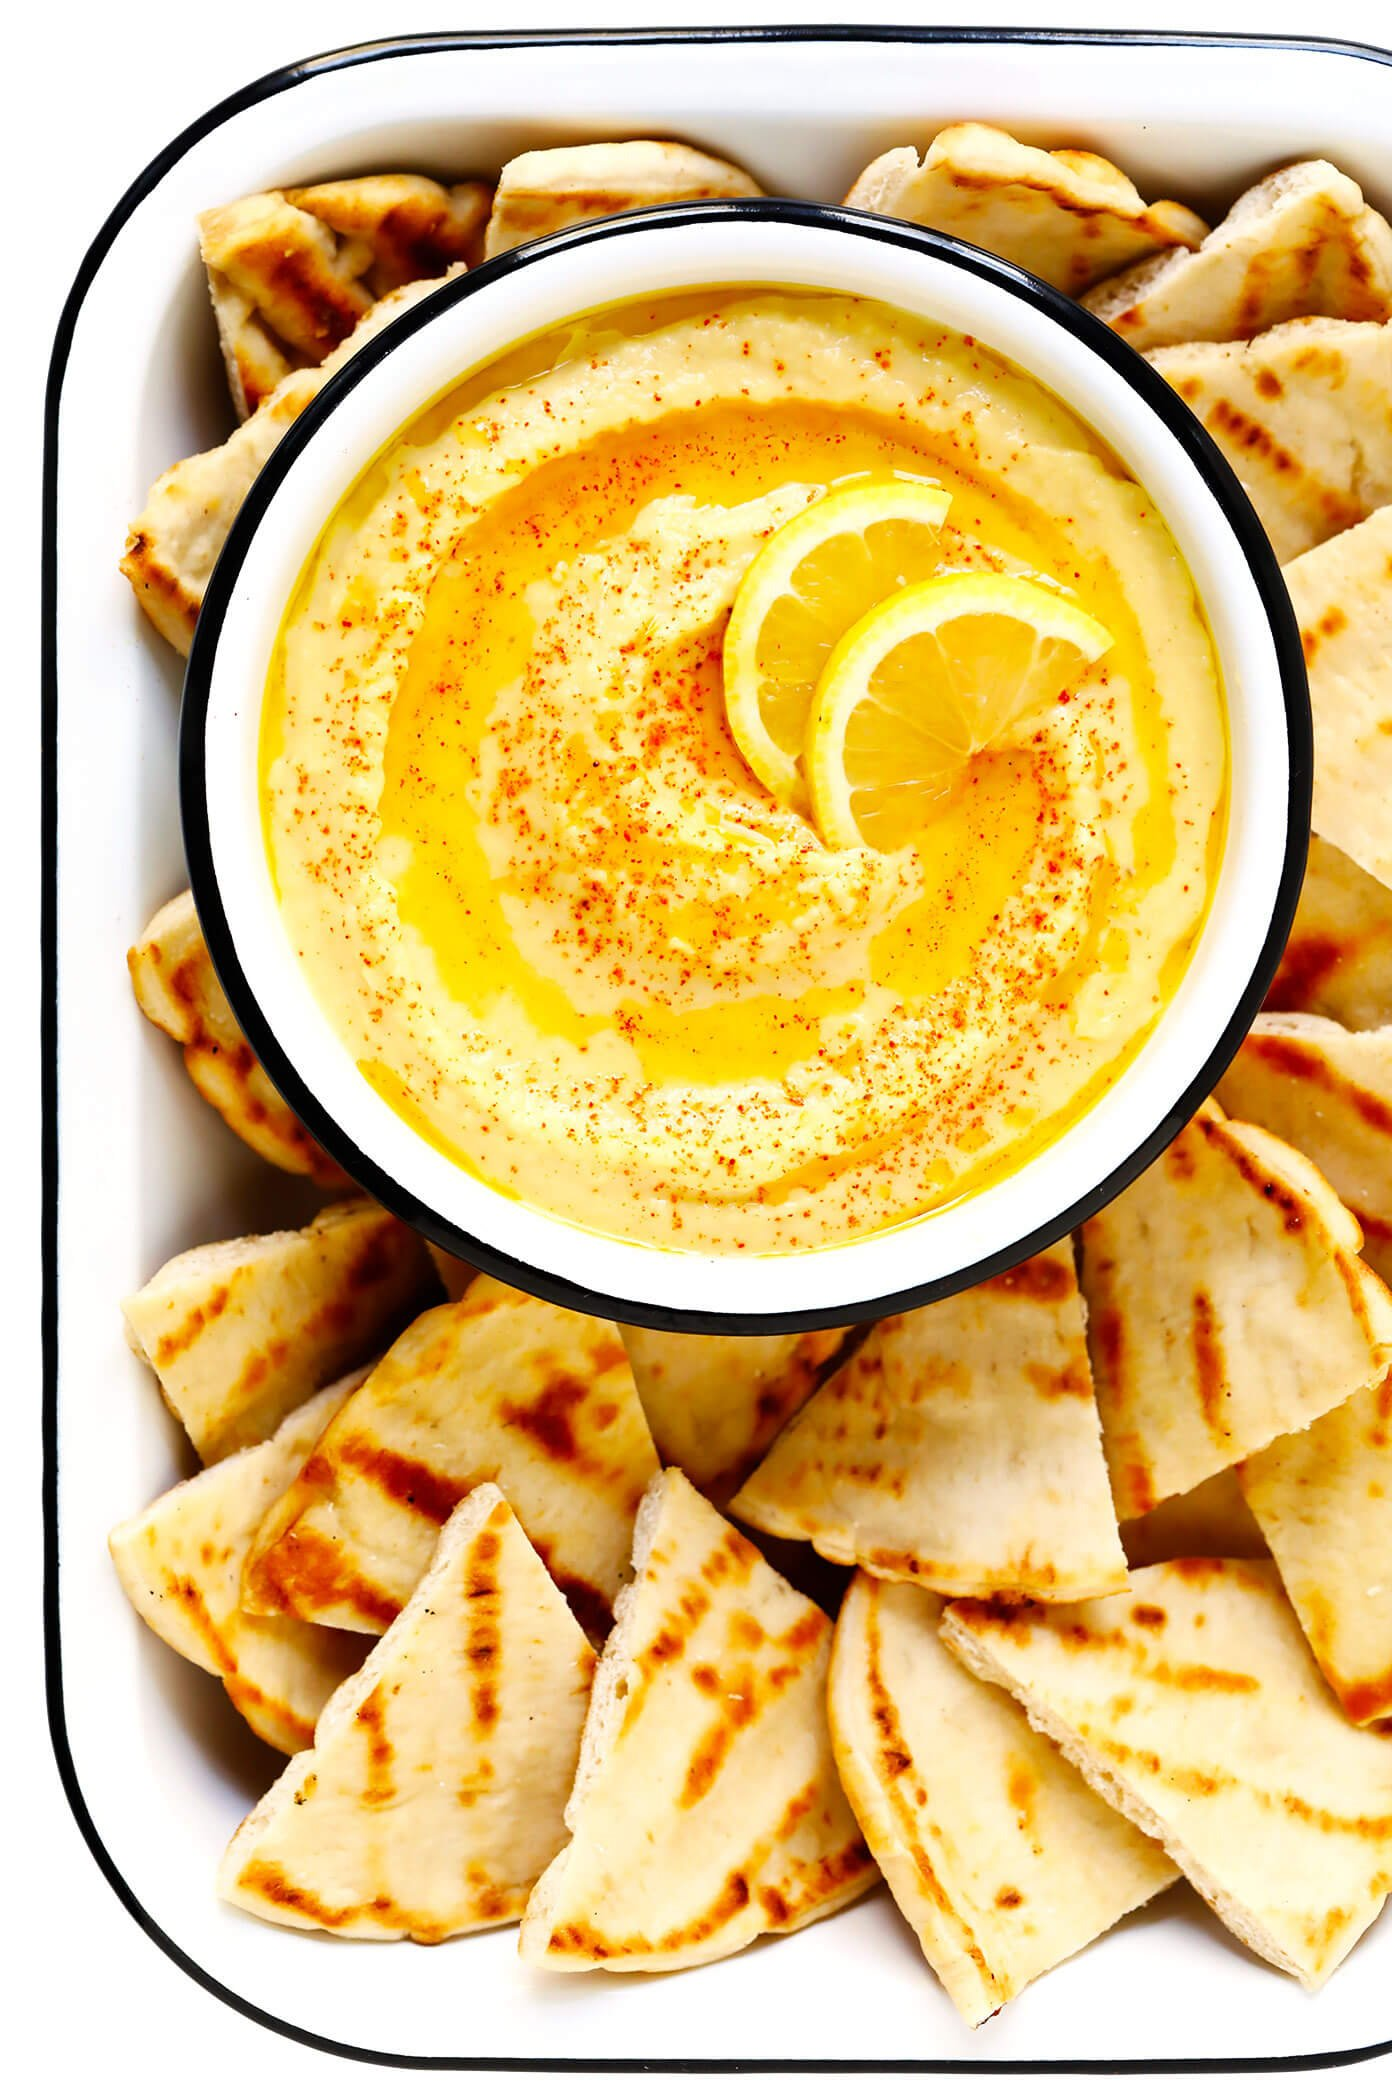 Greek Fava Dip with Pita Bread